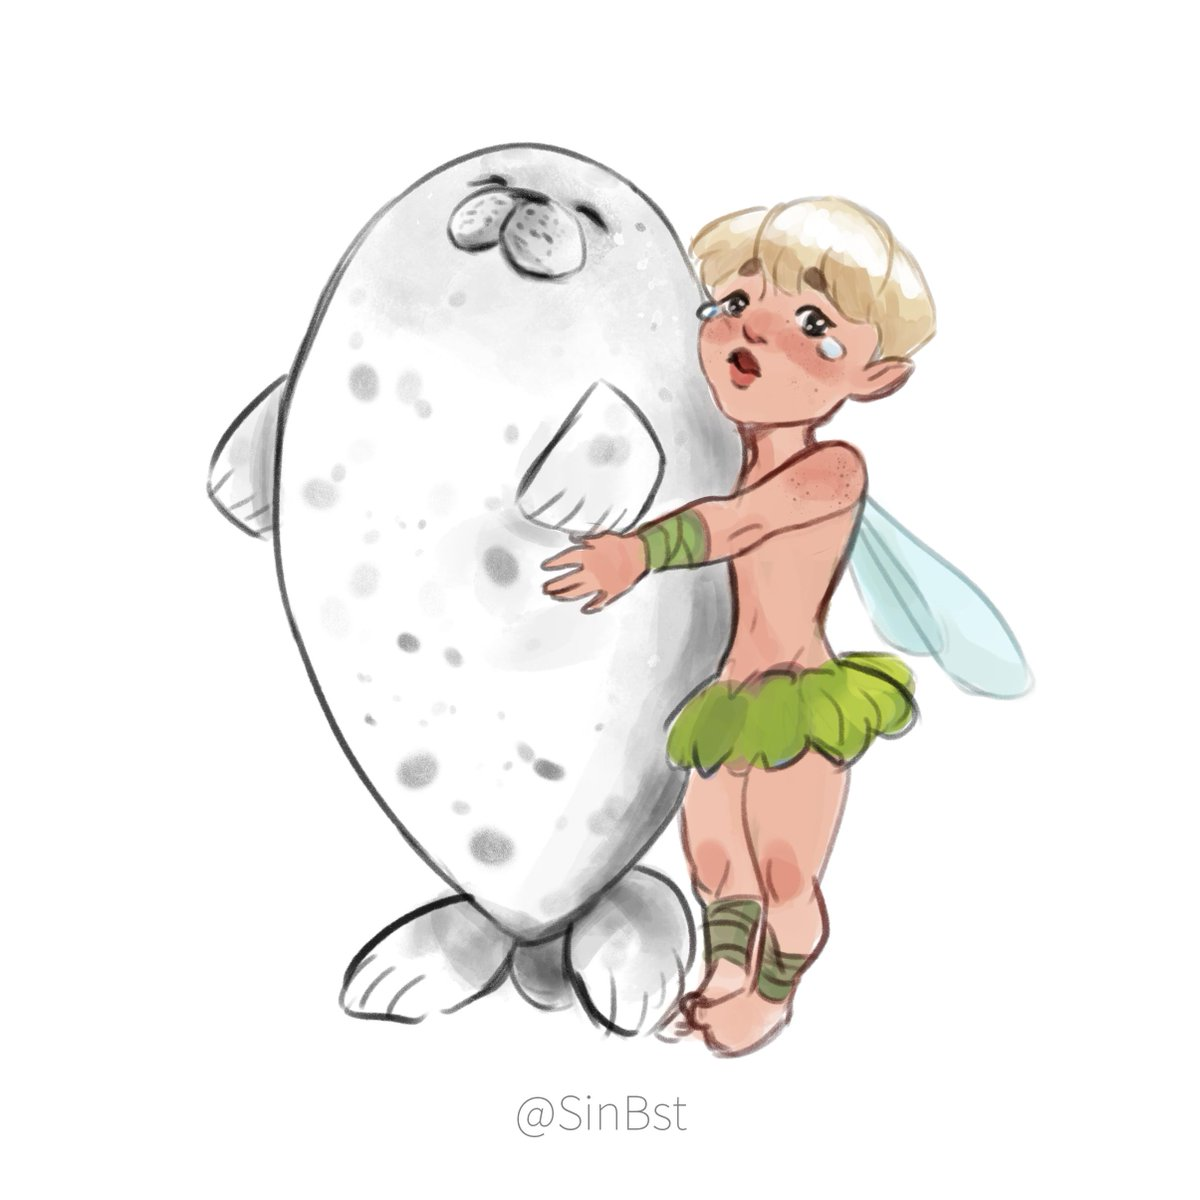 He really wanted the seal plushie... #Jimin #btsfanart <br>http://pic.twitter.com/LYAvK0mJHA